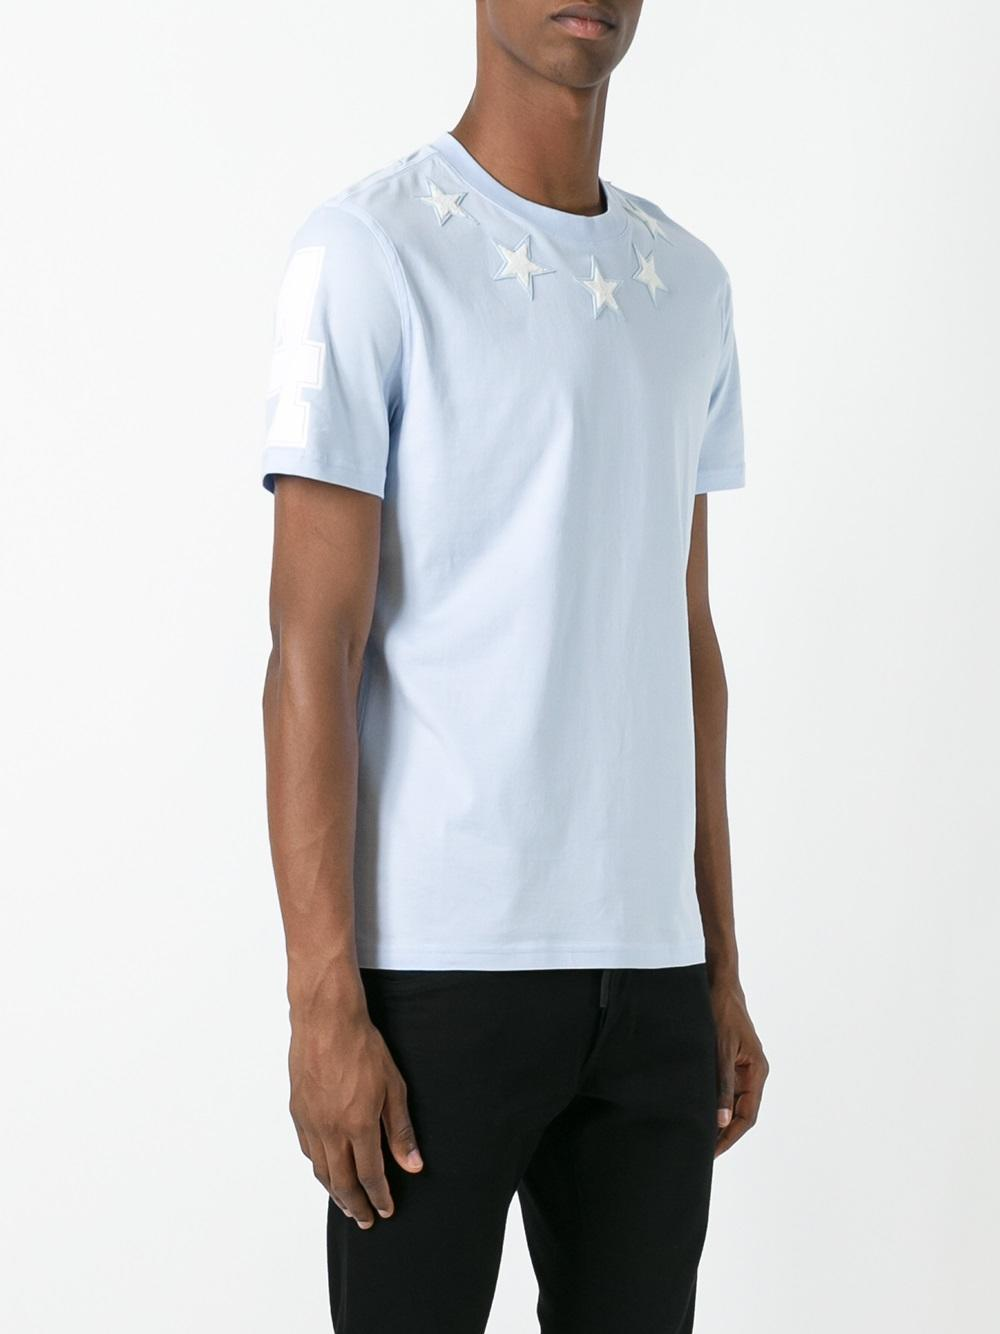 766572db2f258 Lyst - Givenchy Cuban Star Patch Cotton Jersey T-shirt in Blue for Men